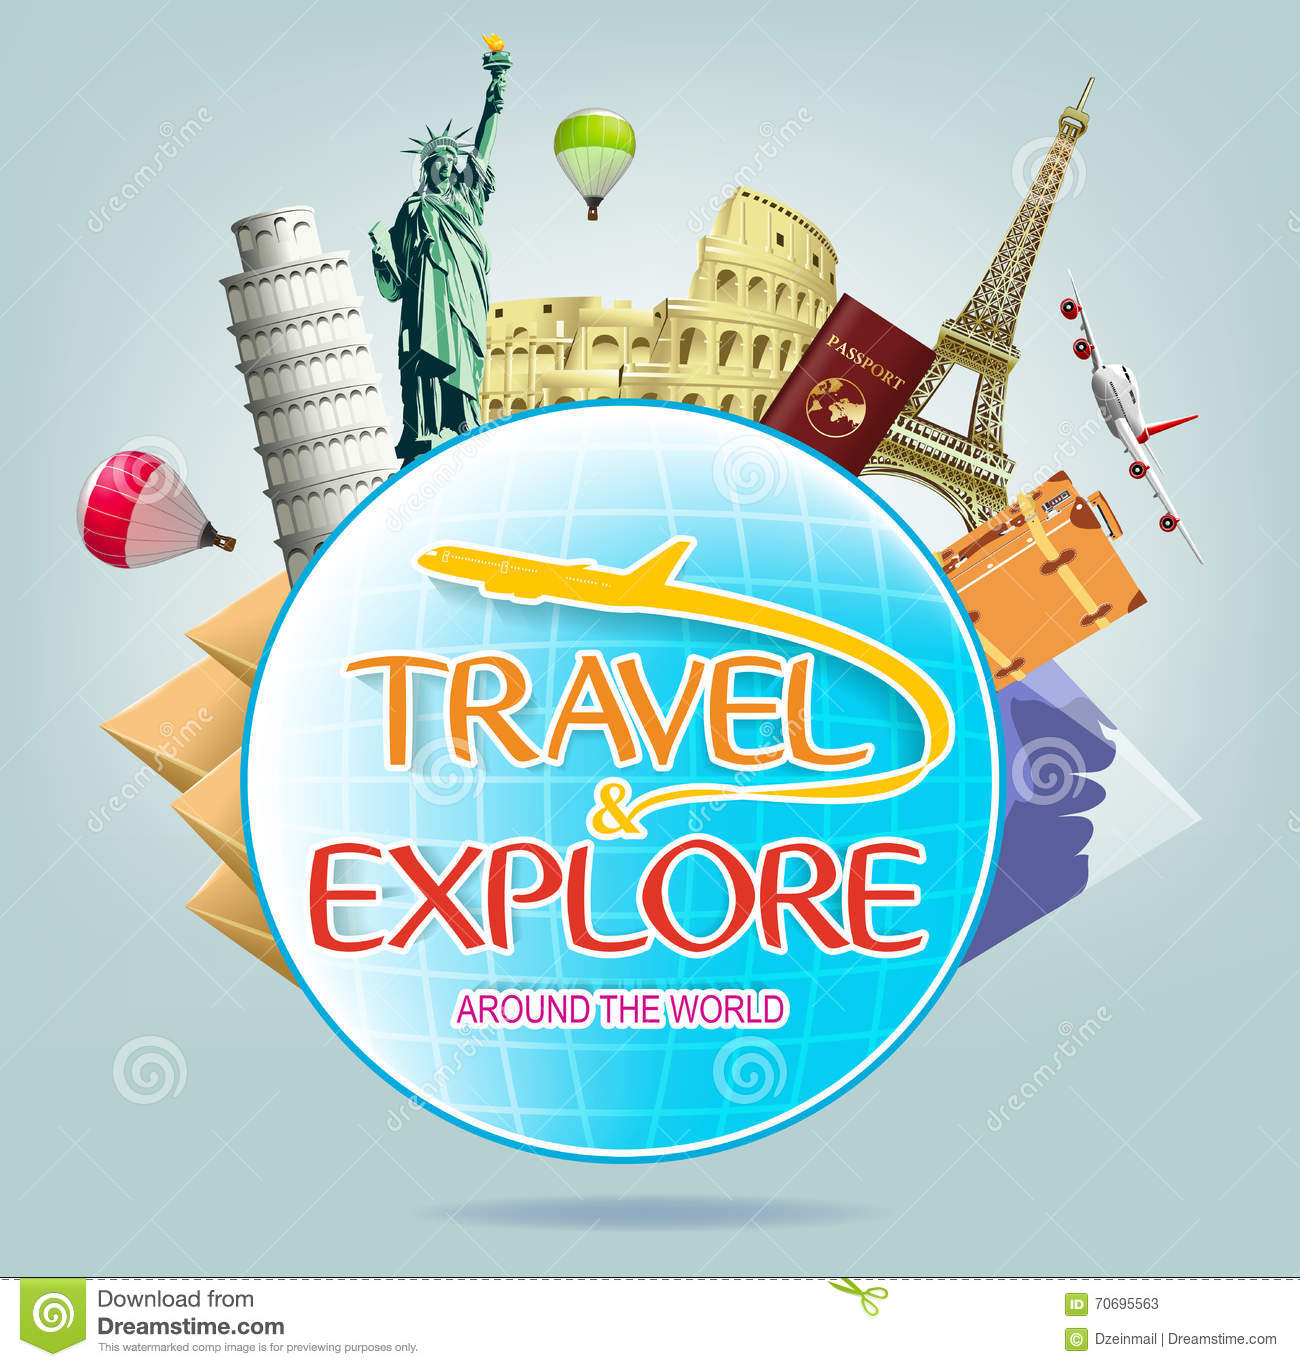 travel and explore around the world with globe and iconic